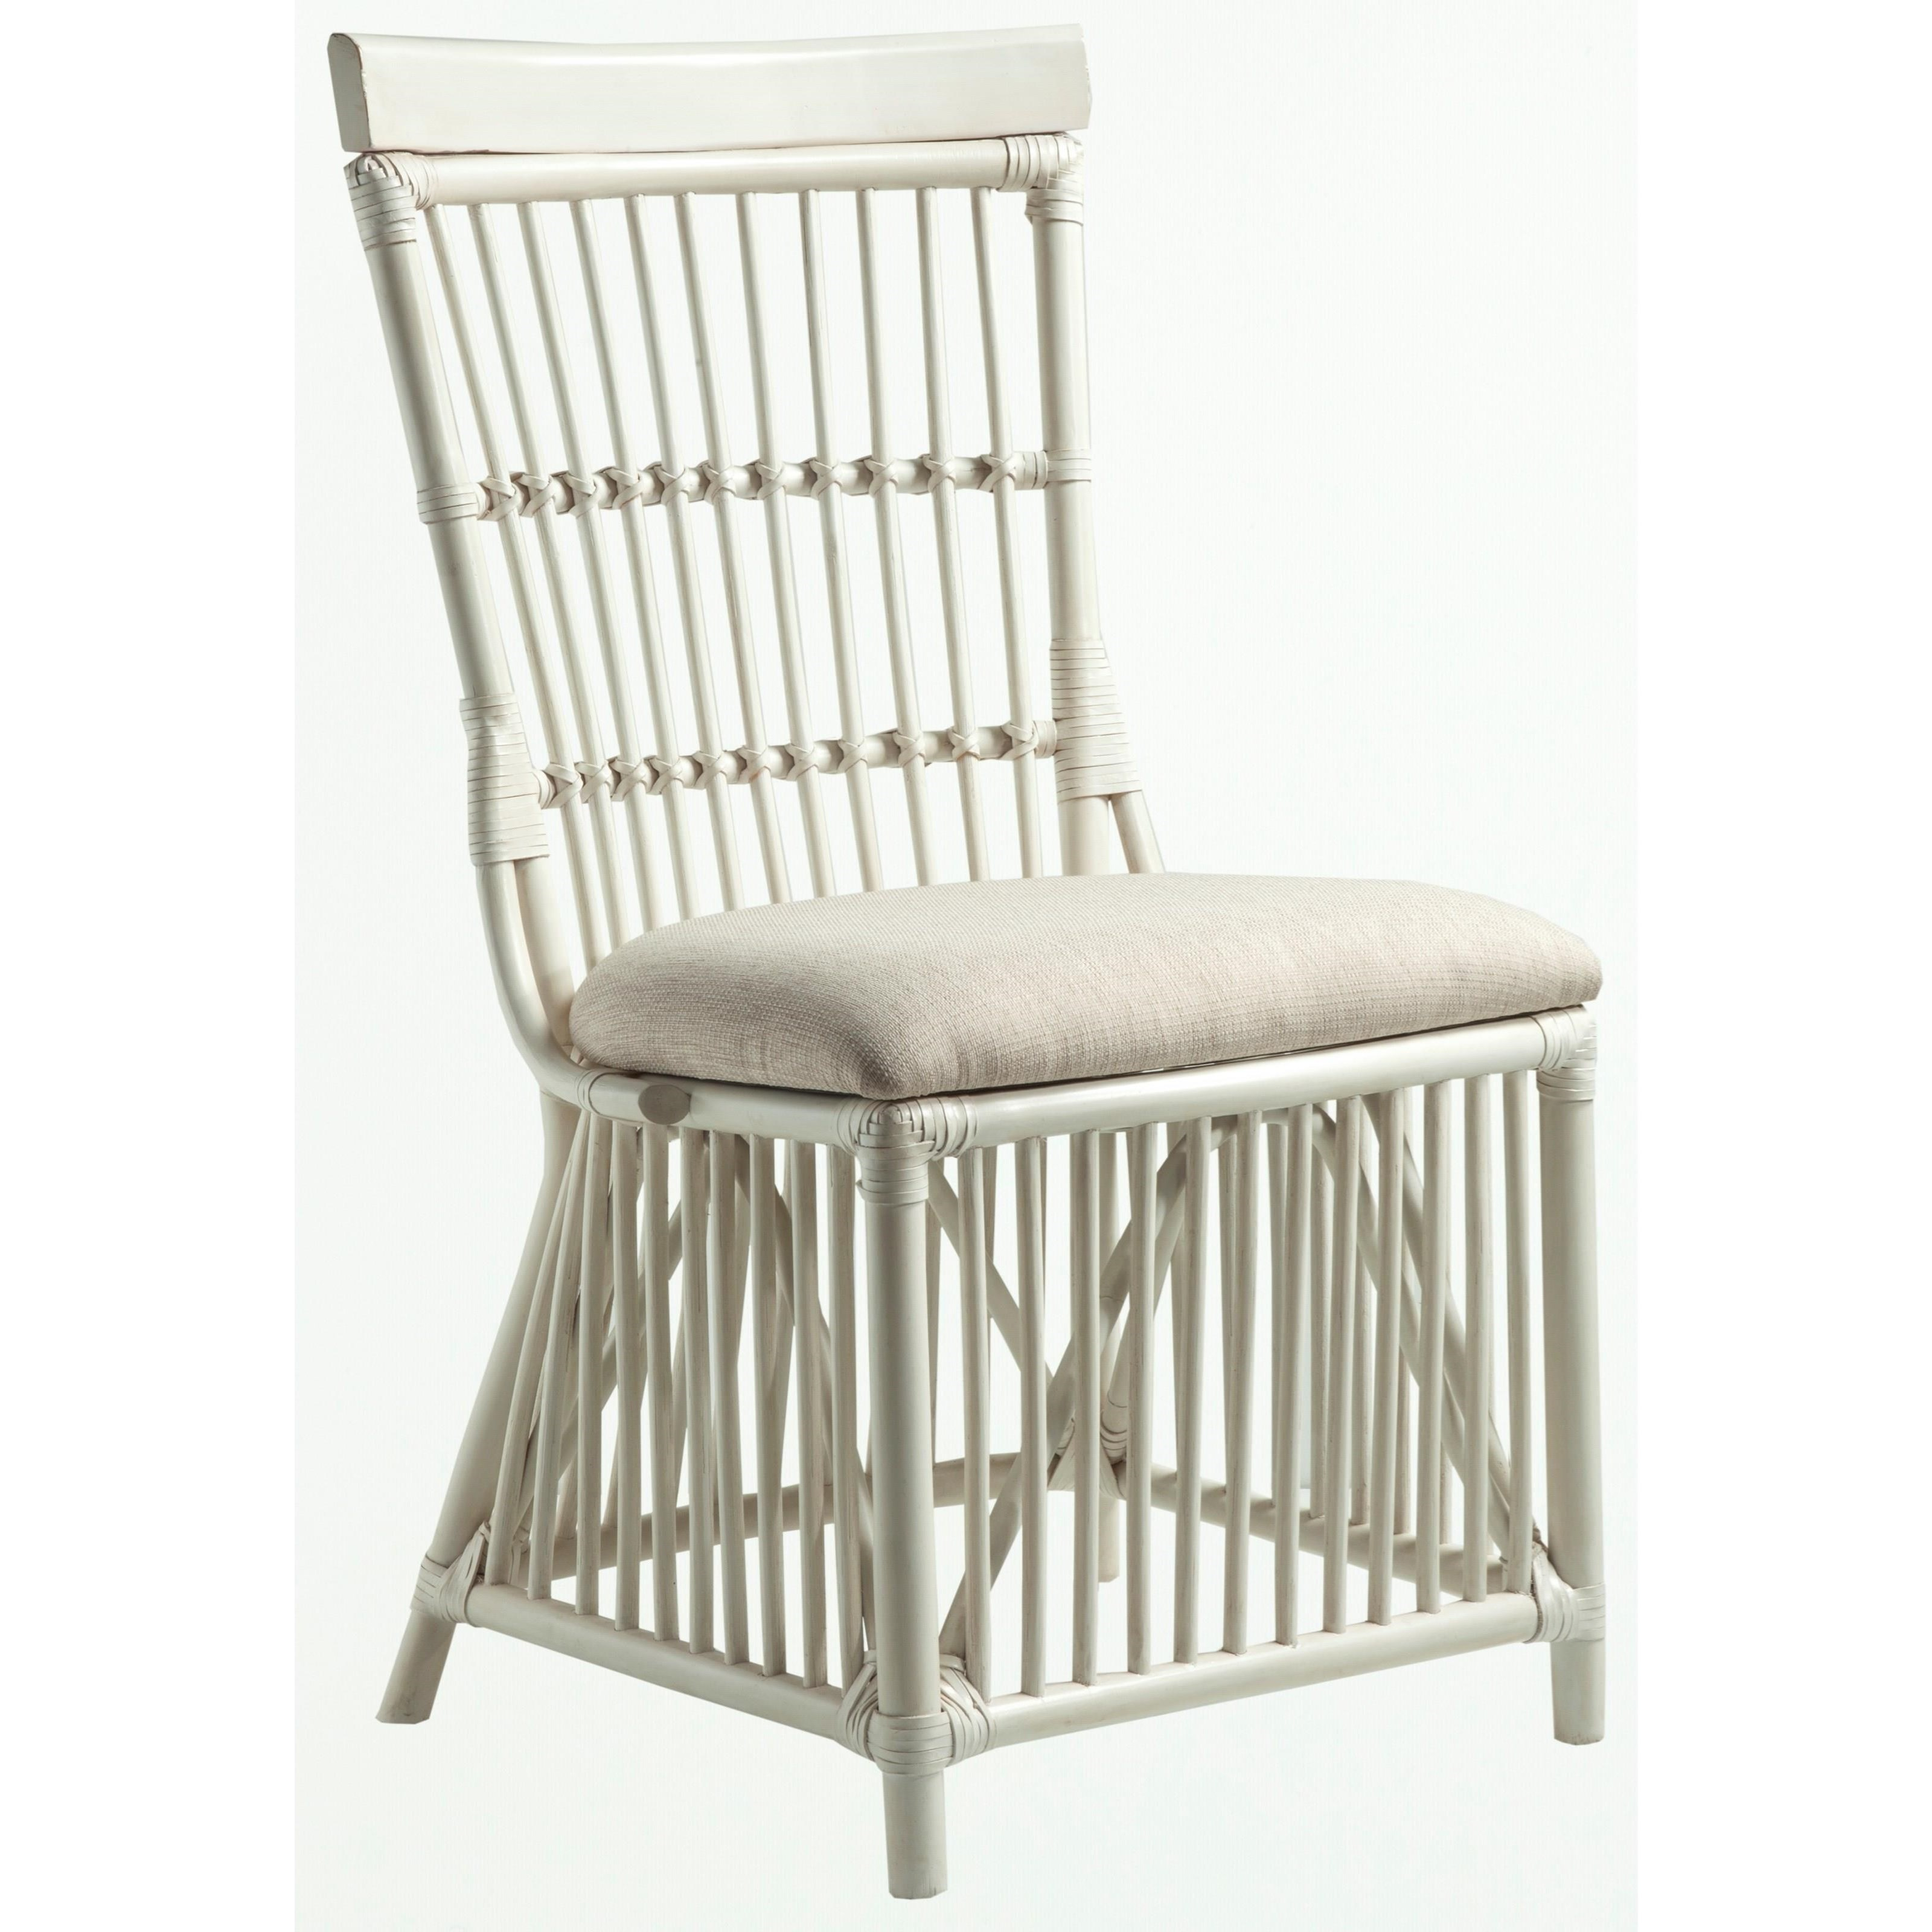 Millbrook Cream Rattan Side Chair by Panama Jack by Palmetto Home at Baer's Furniture